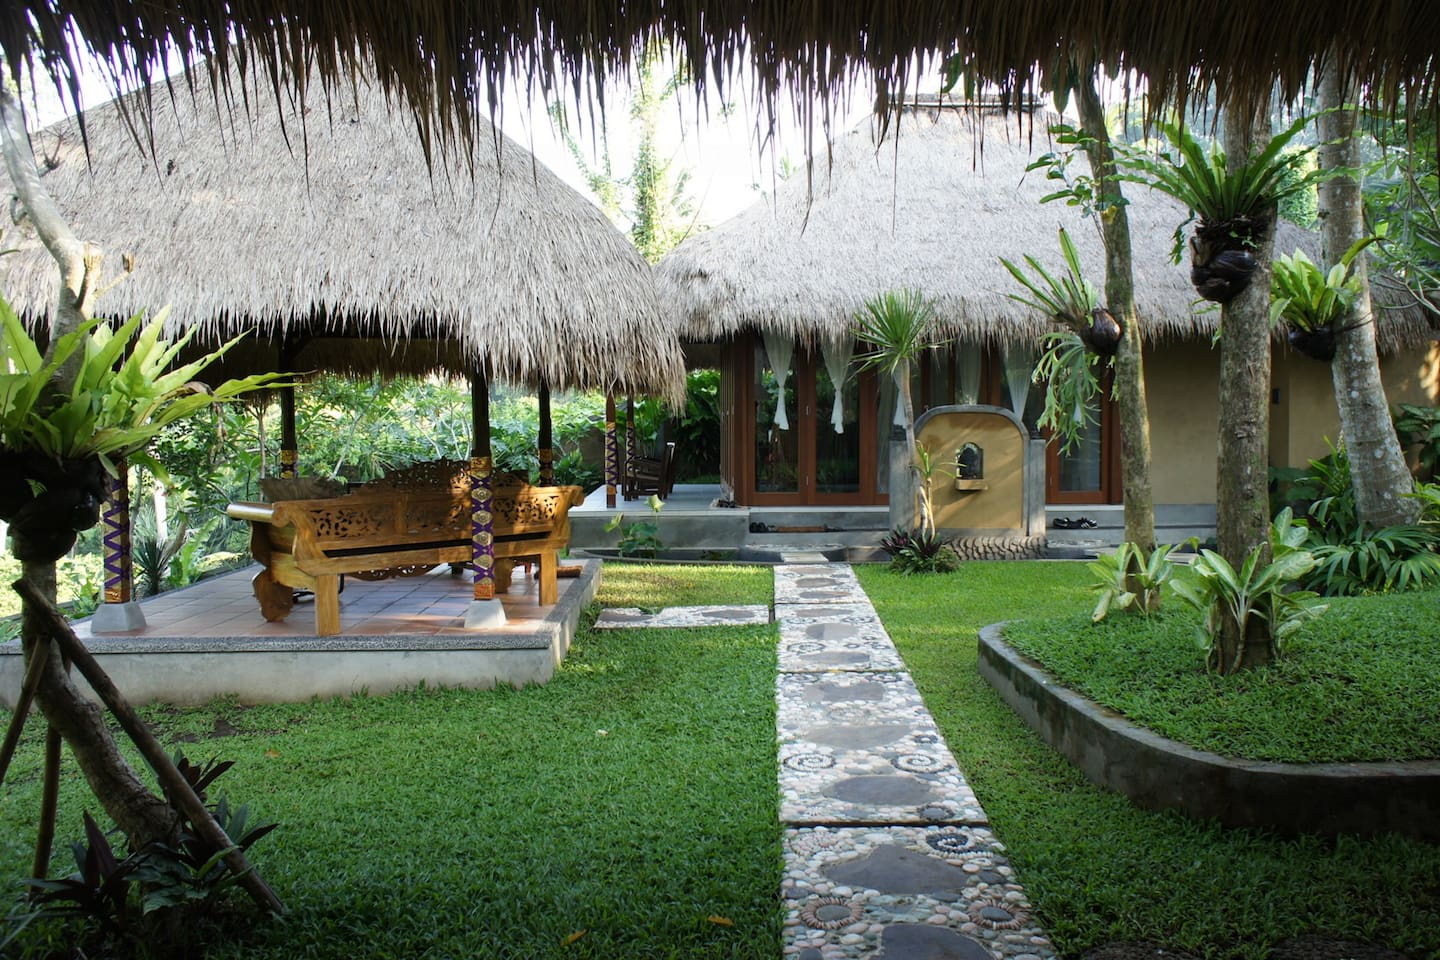 Casa Serenita's master bedroom and the gazebo.